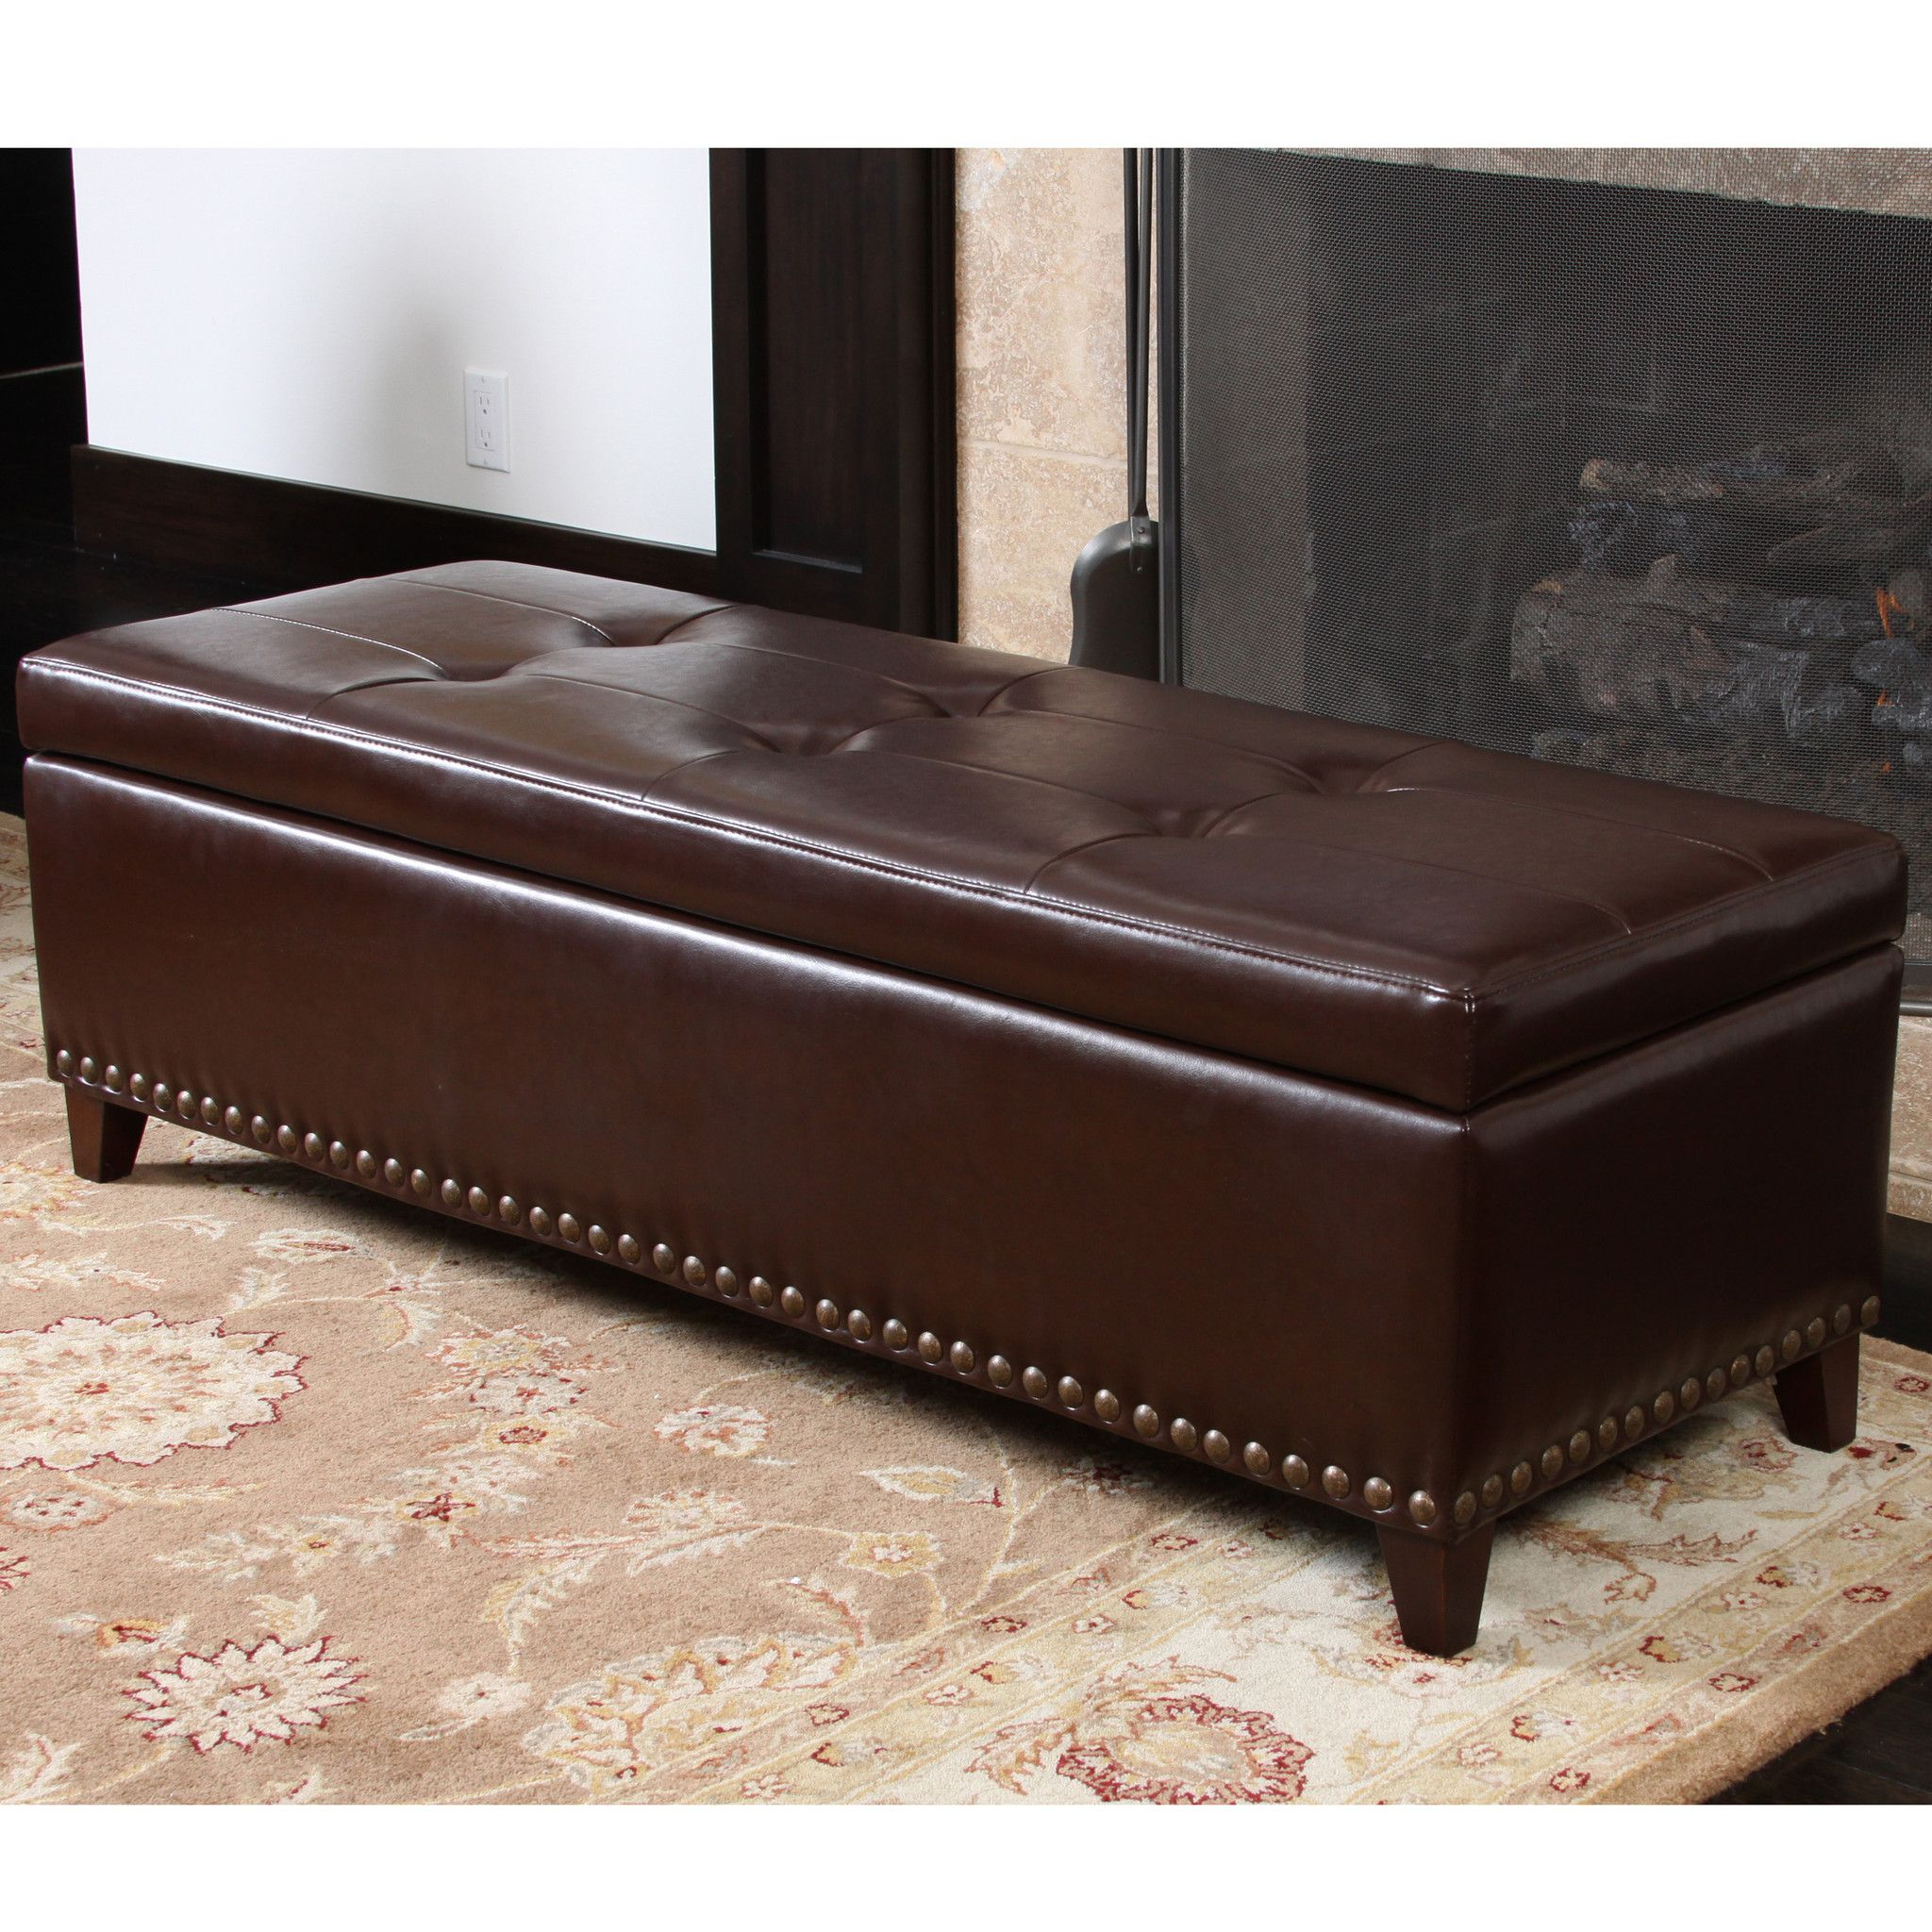 Charleston Rectangle Tufted Leather Storage Ottoman Bench Leather Storage Ottoman Storage Ottoman Bench Leather Storage Bench